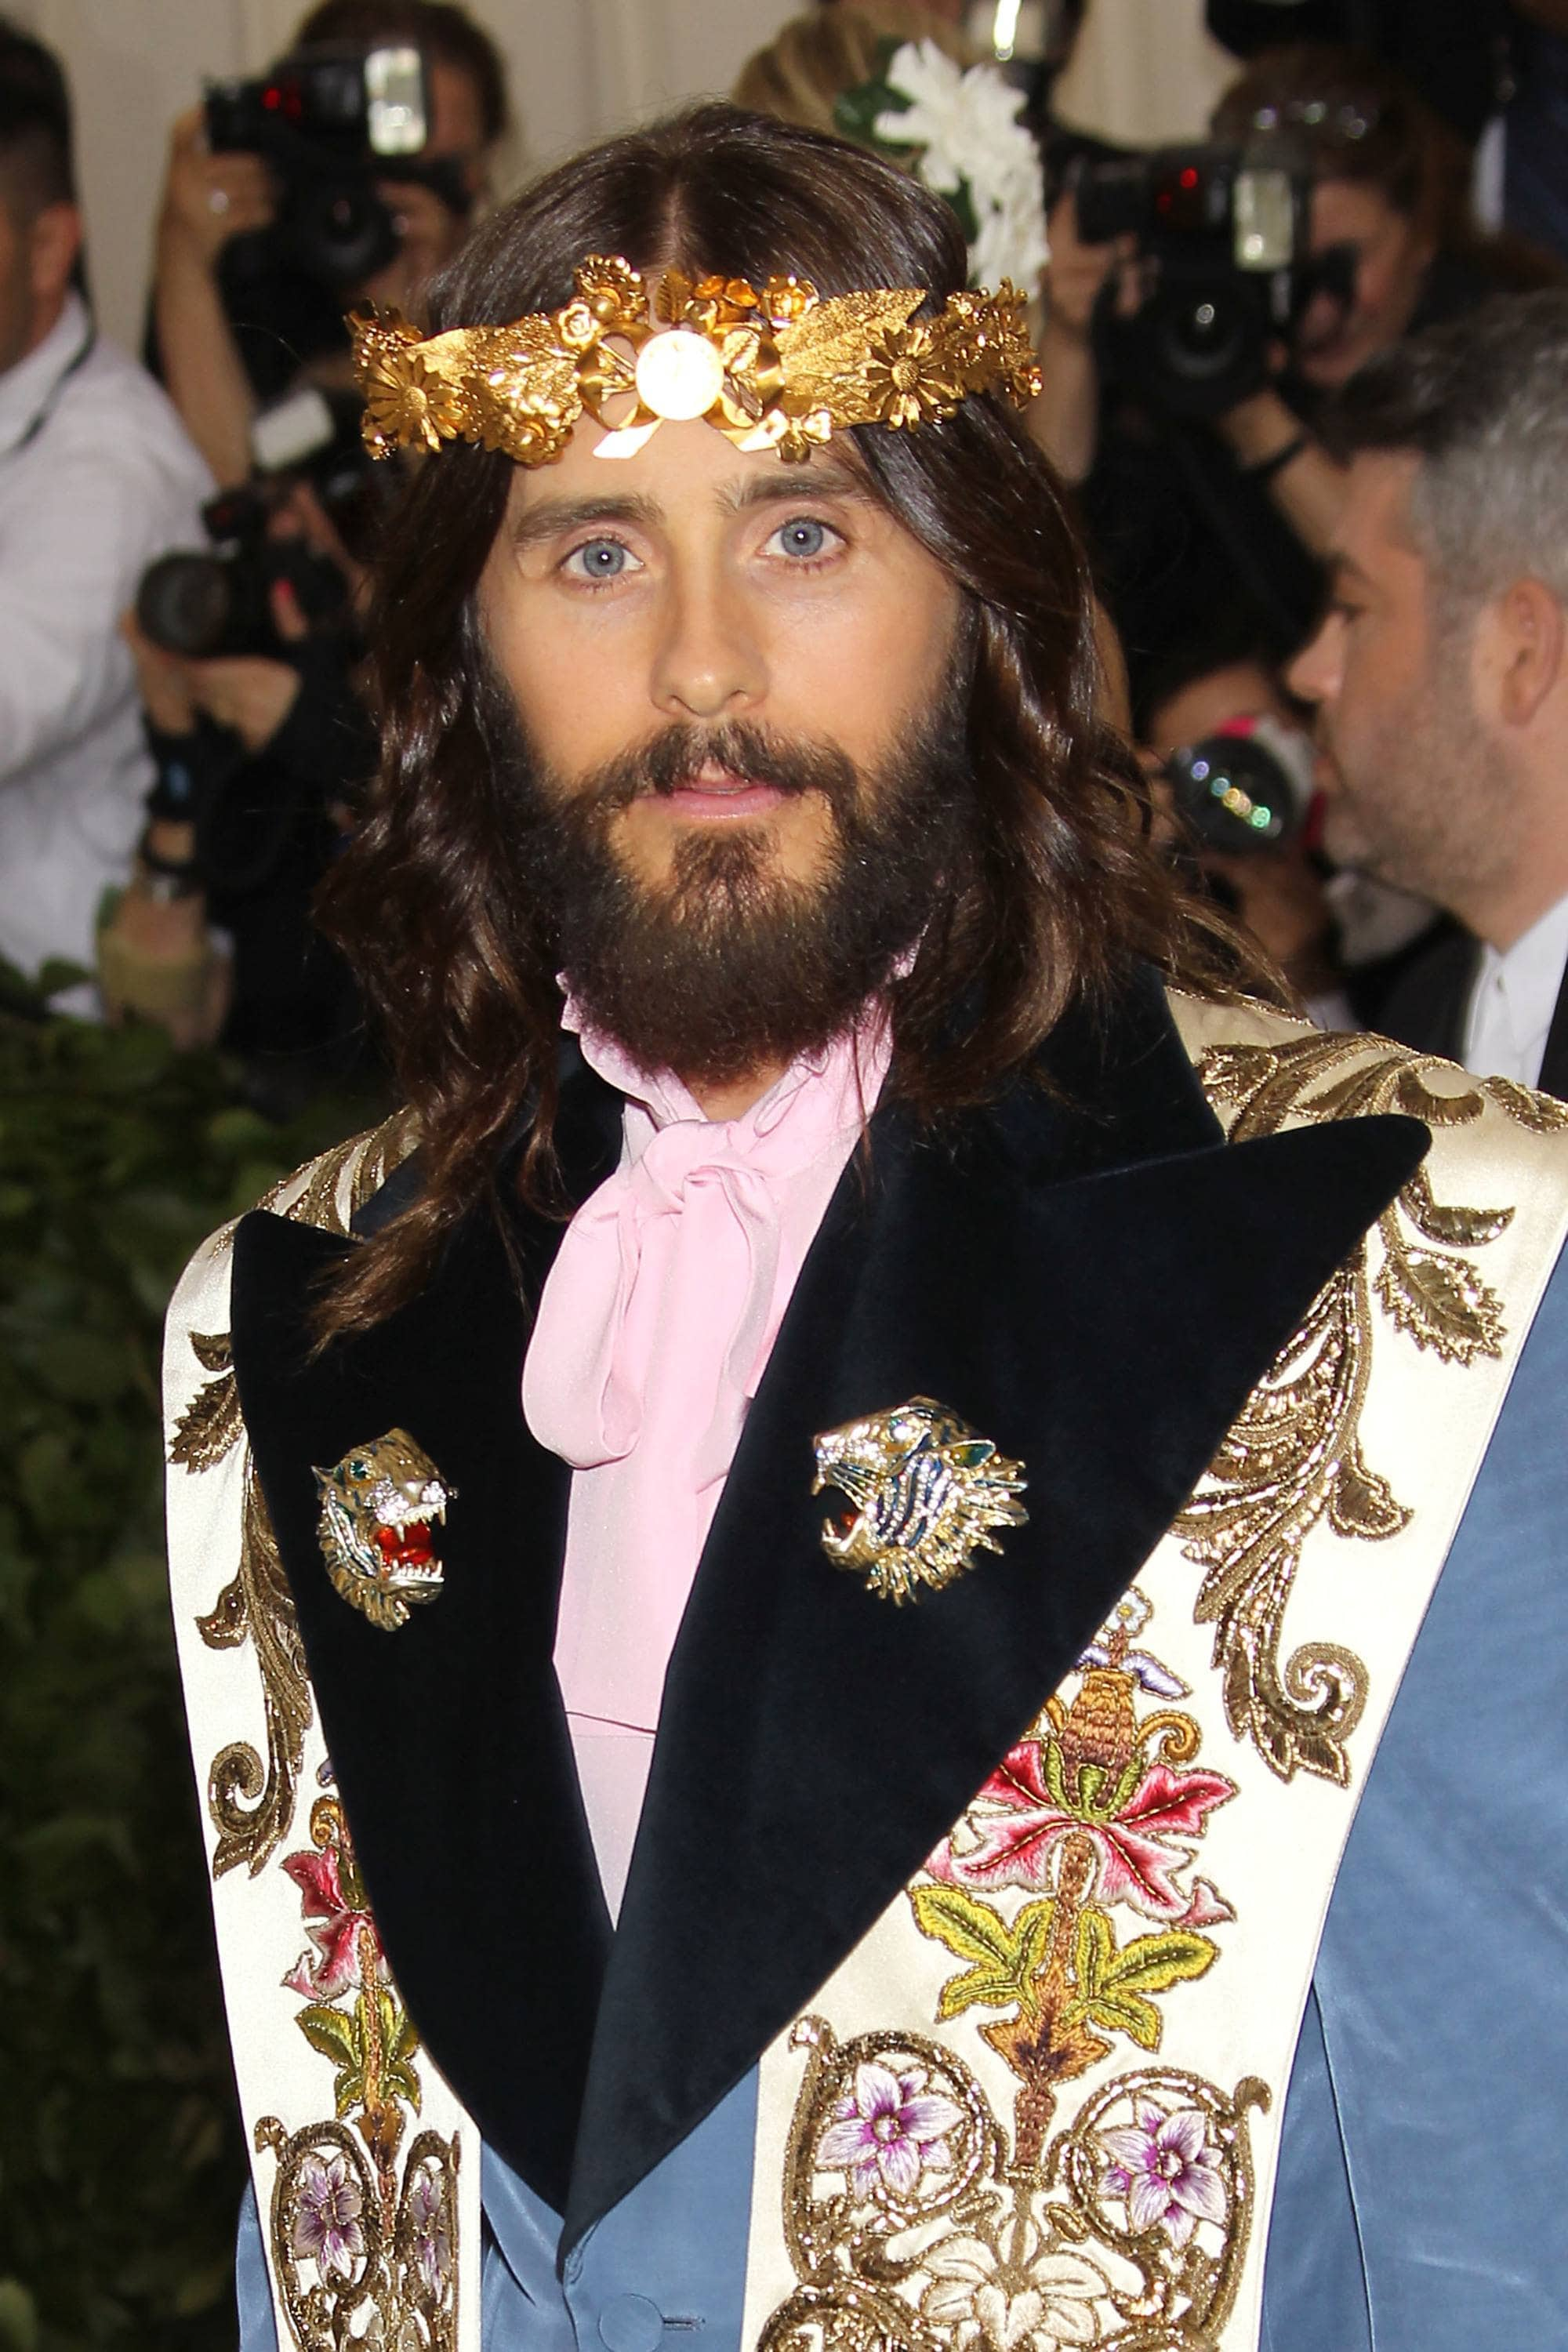 jared-leto-crown rambut panjang ikal.